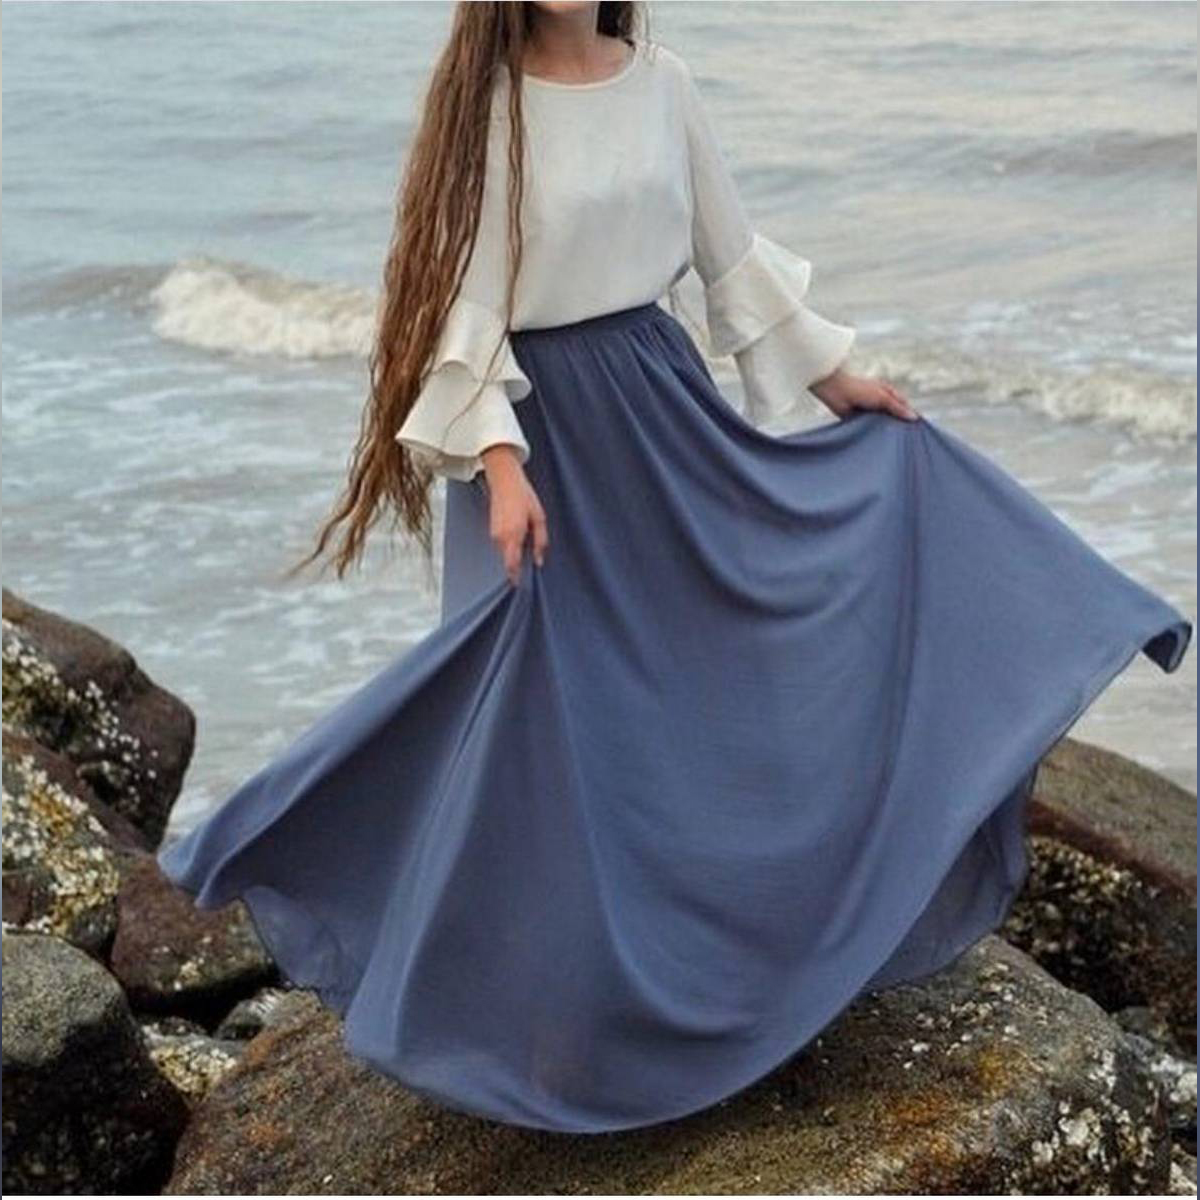 flared skirt with white shirt